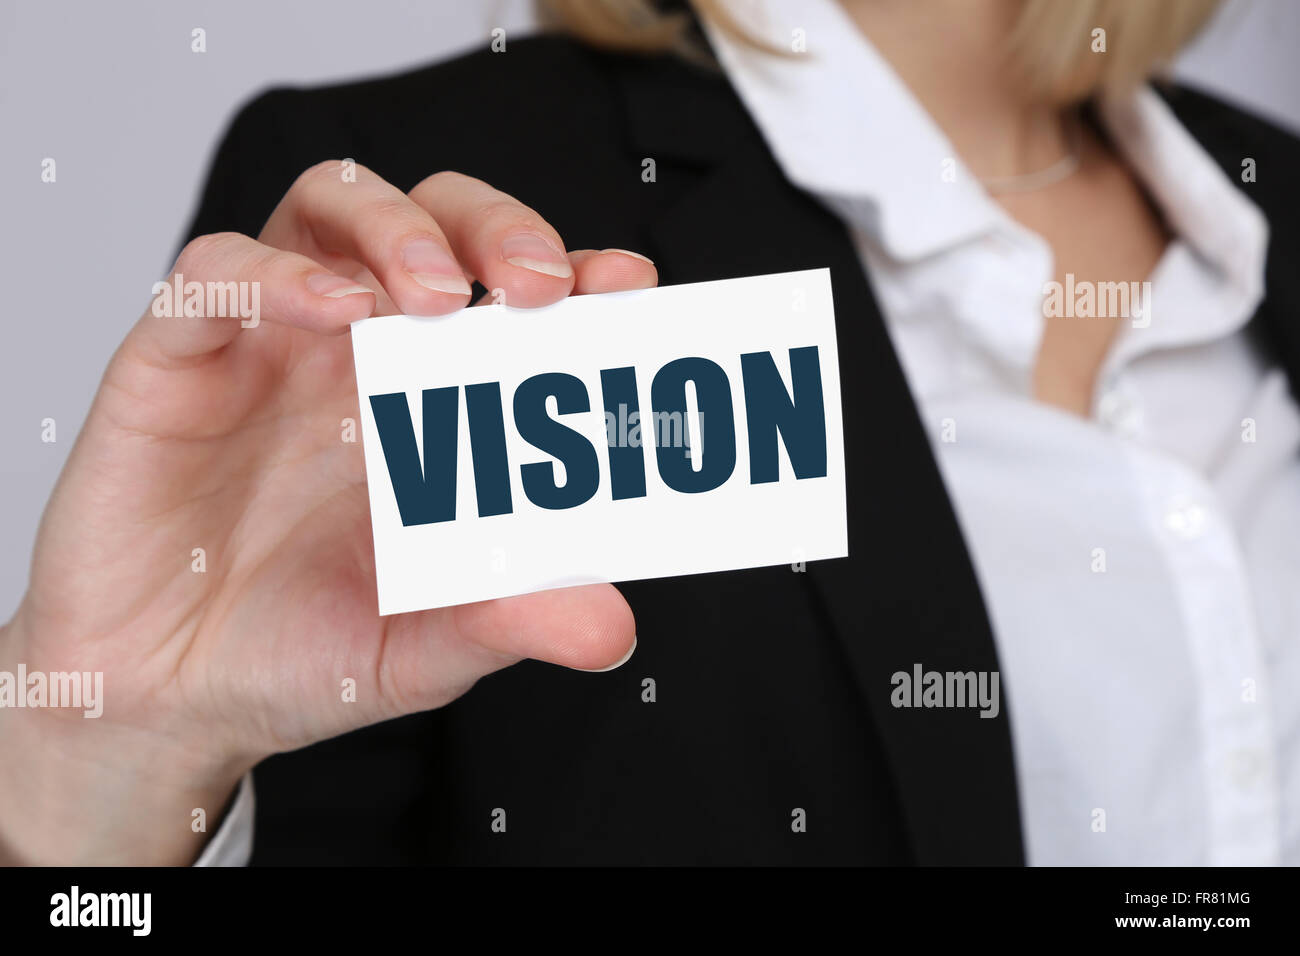 Vision future idea leadership hope success successful business concept creativity - Stock Image